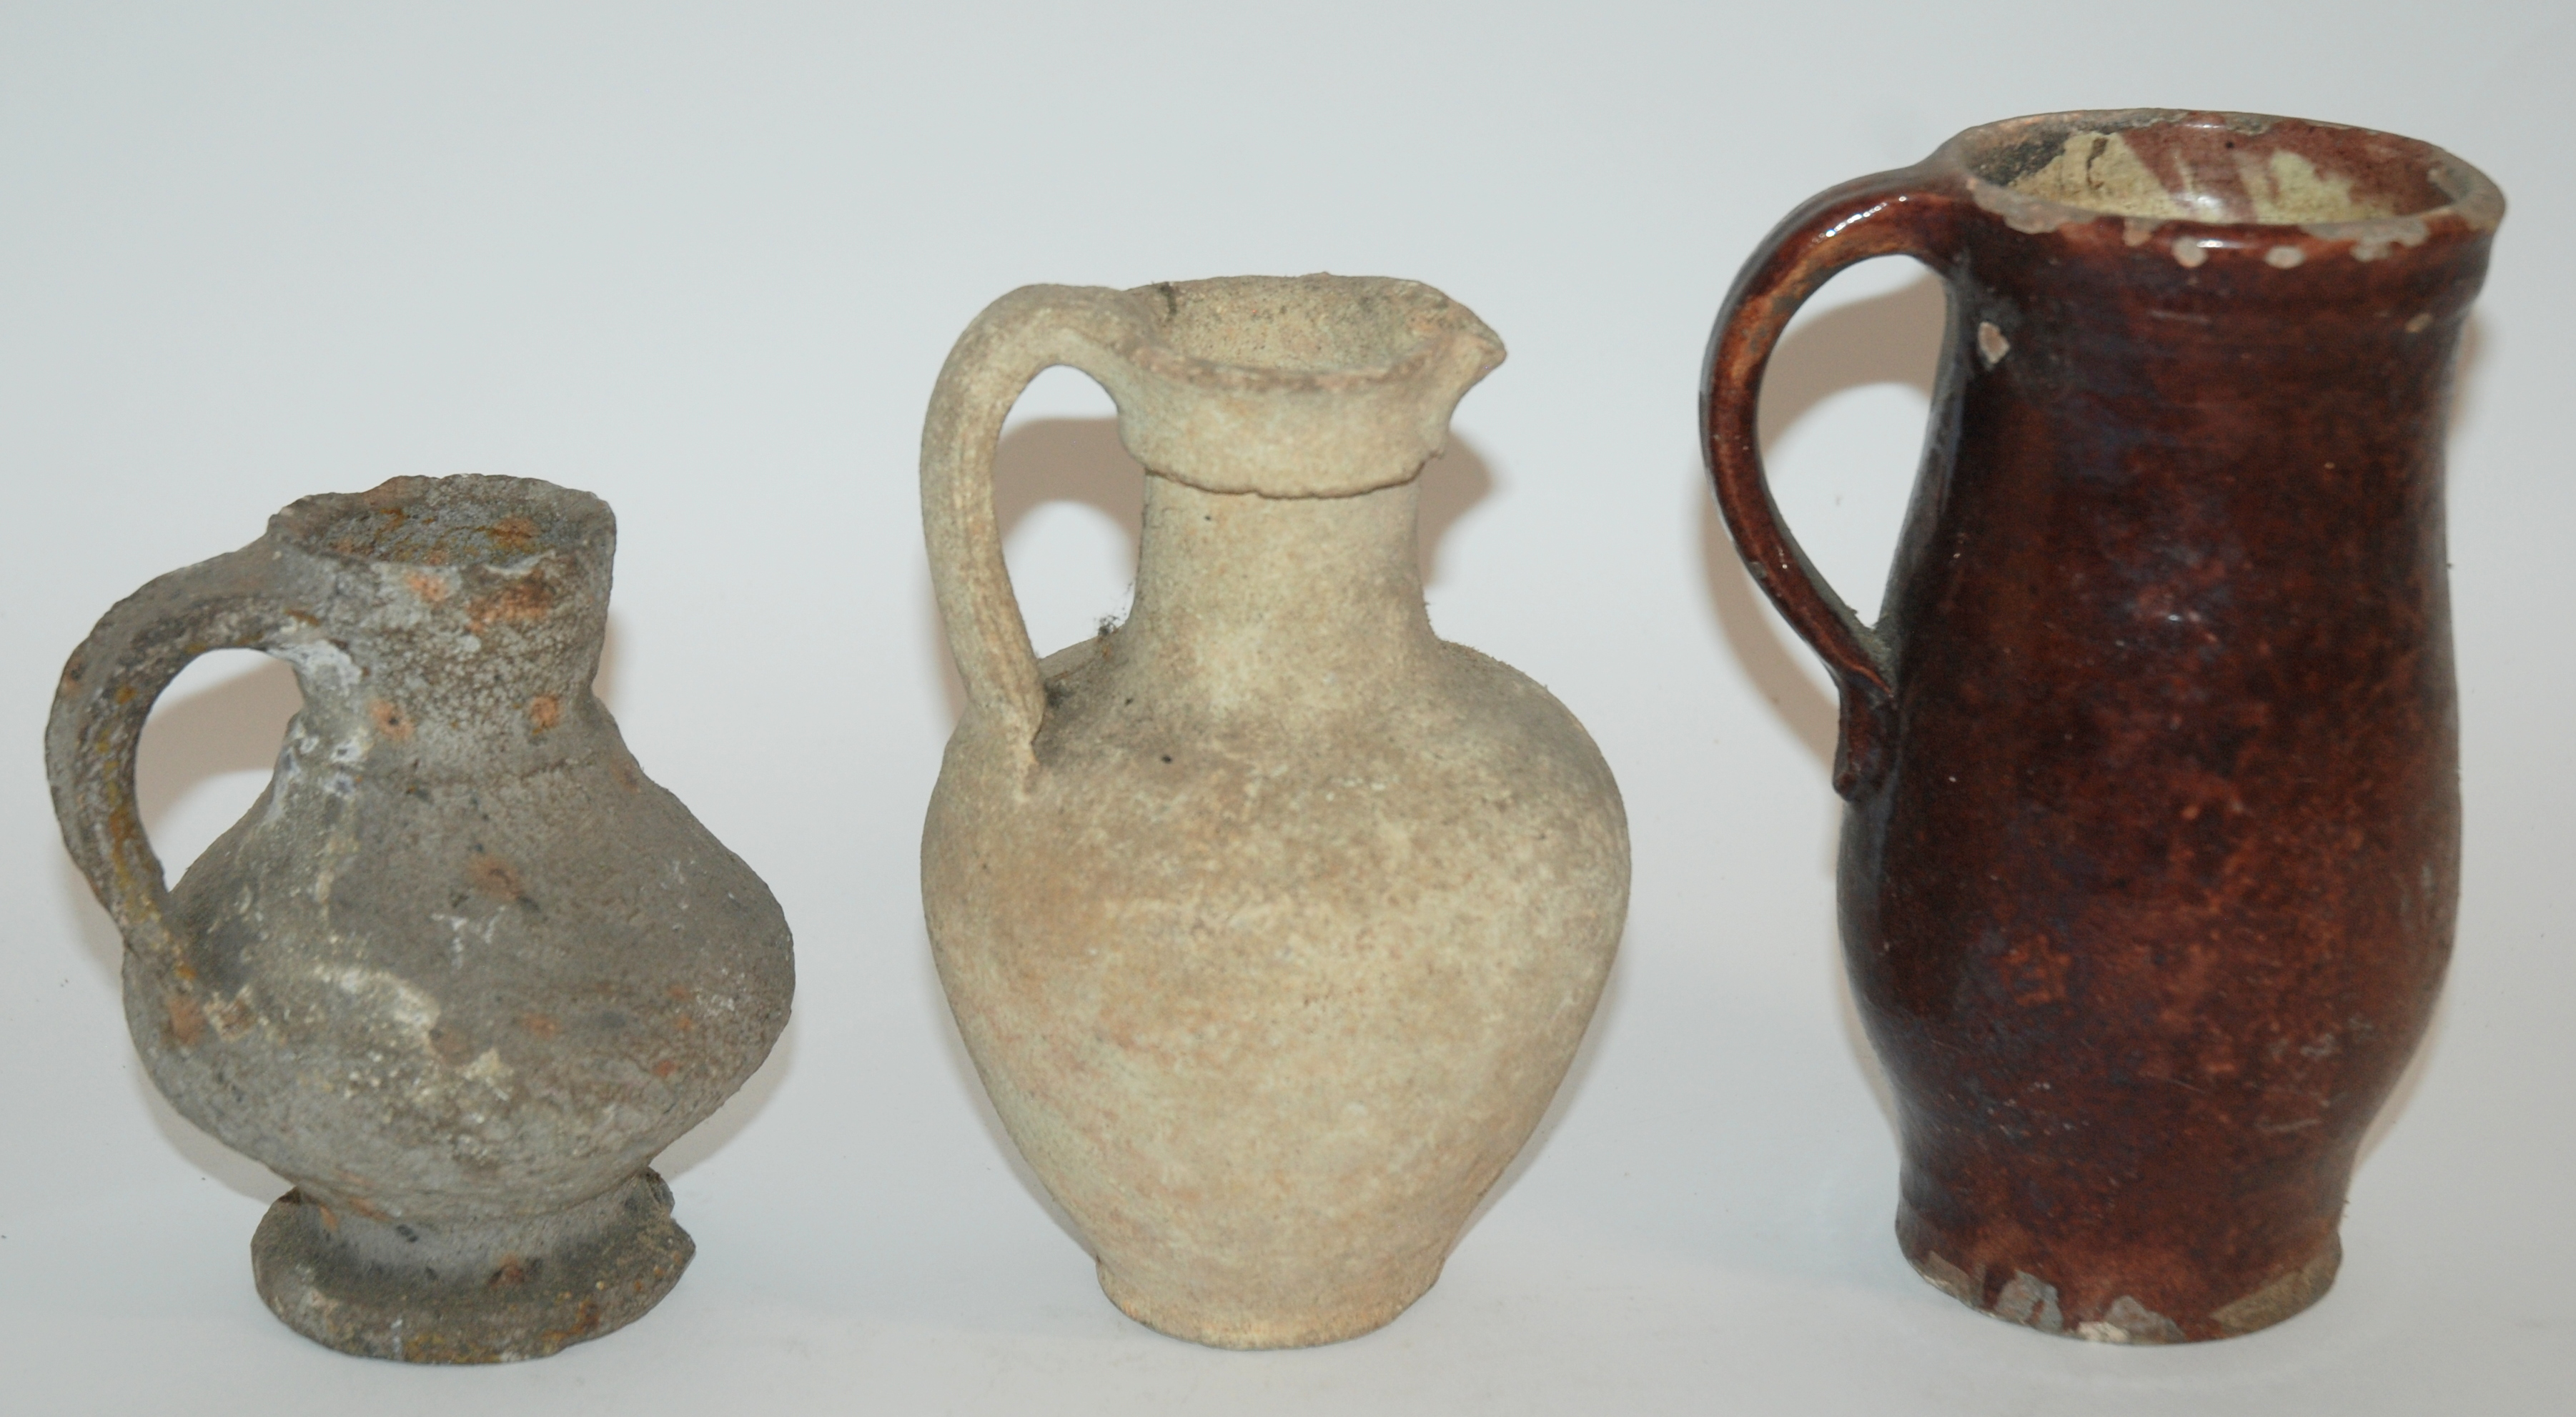 Lot 13 - A QUANTITY OF EXCAVATED PRE COLOMBIAN POTTERY SHARDS and three early pottery jugs, 13.5cm, 18cm